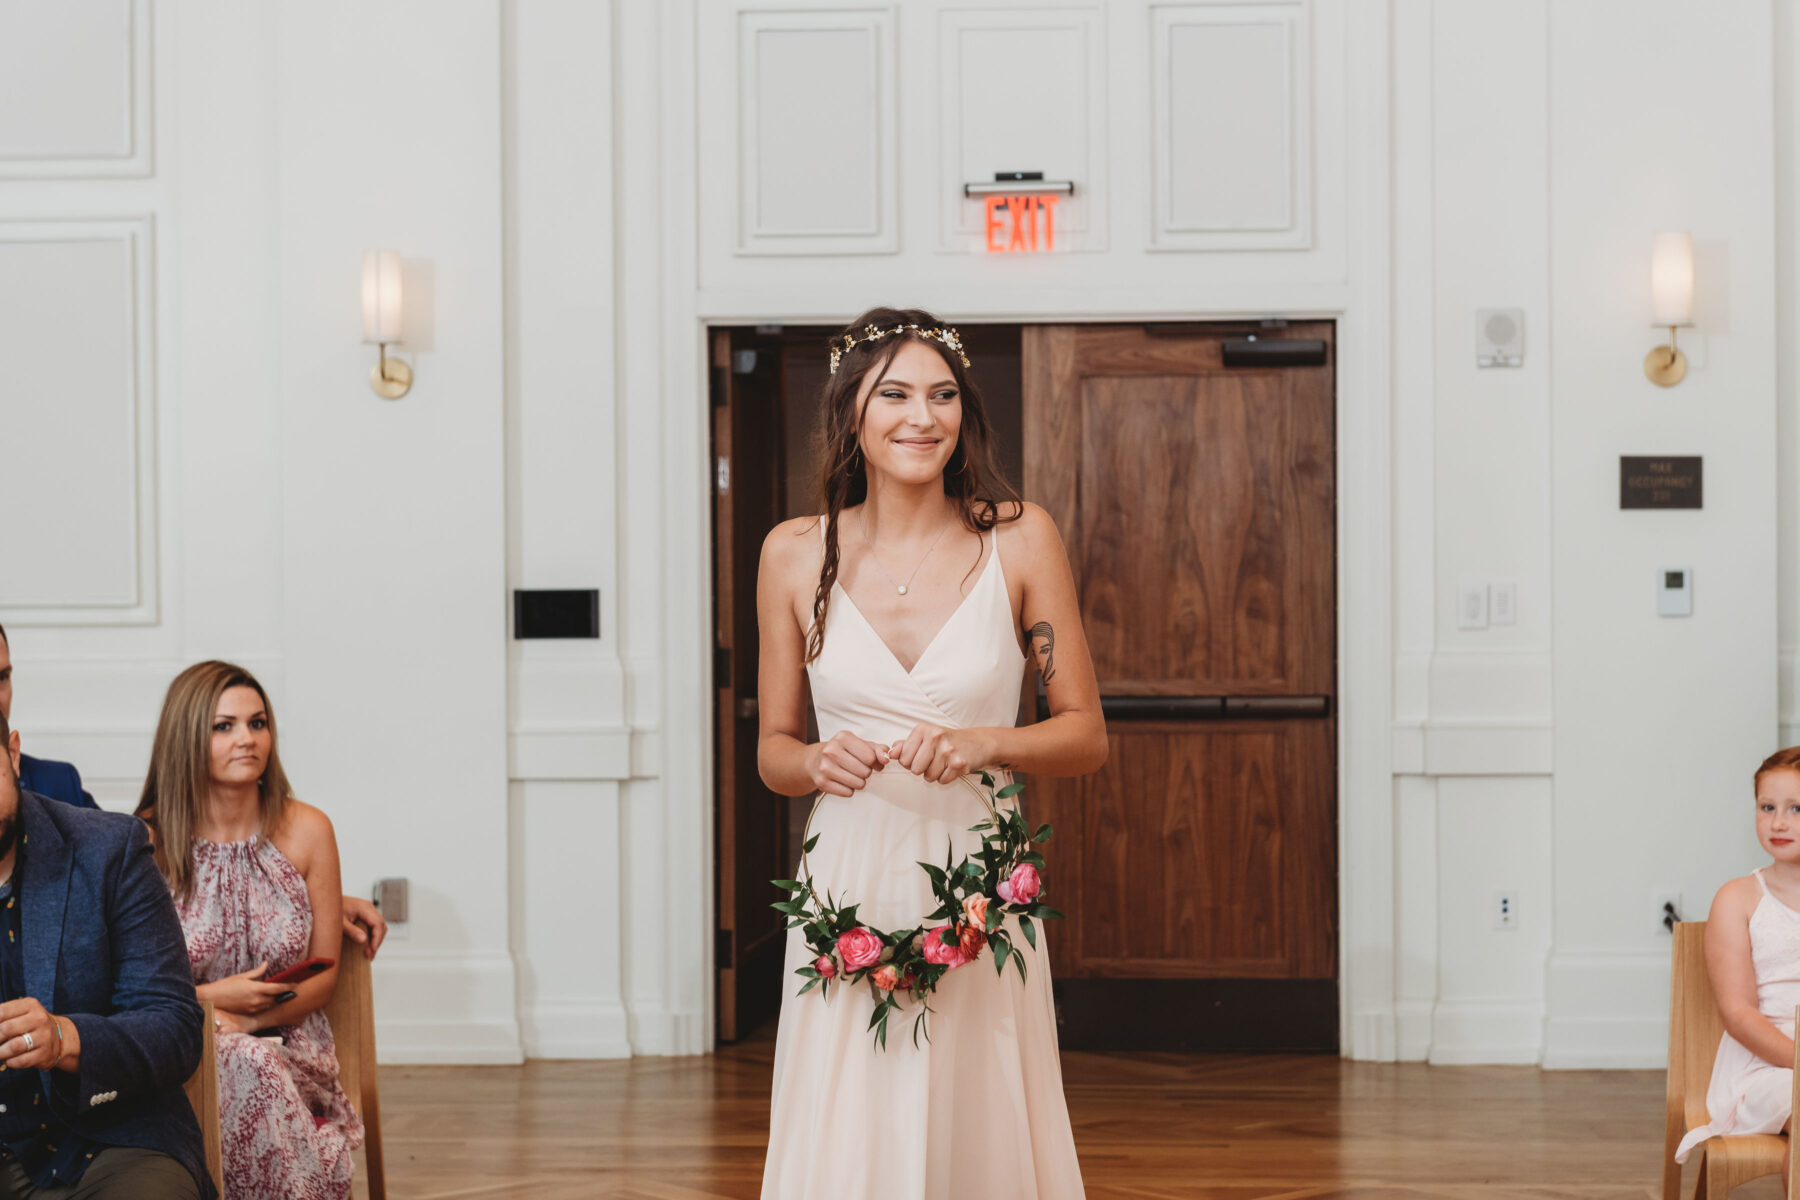 Modern wedding bouquet: Summer Tennessee Wedding at Noelle from Jayde J. Smith Events featured on Nashville Bride Guide